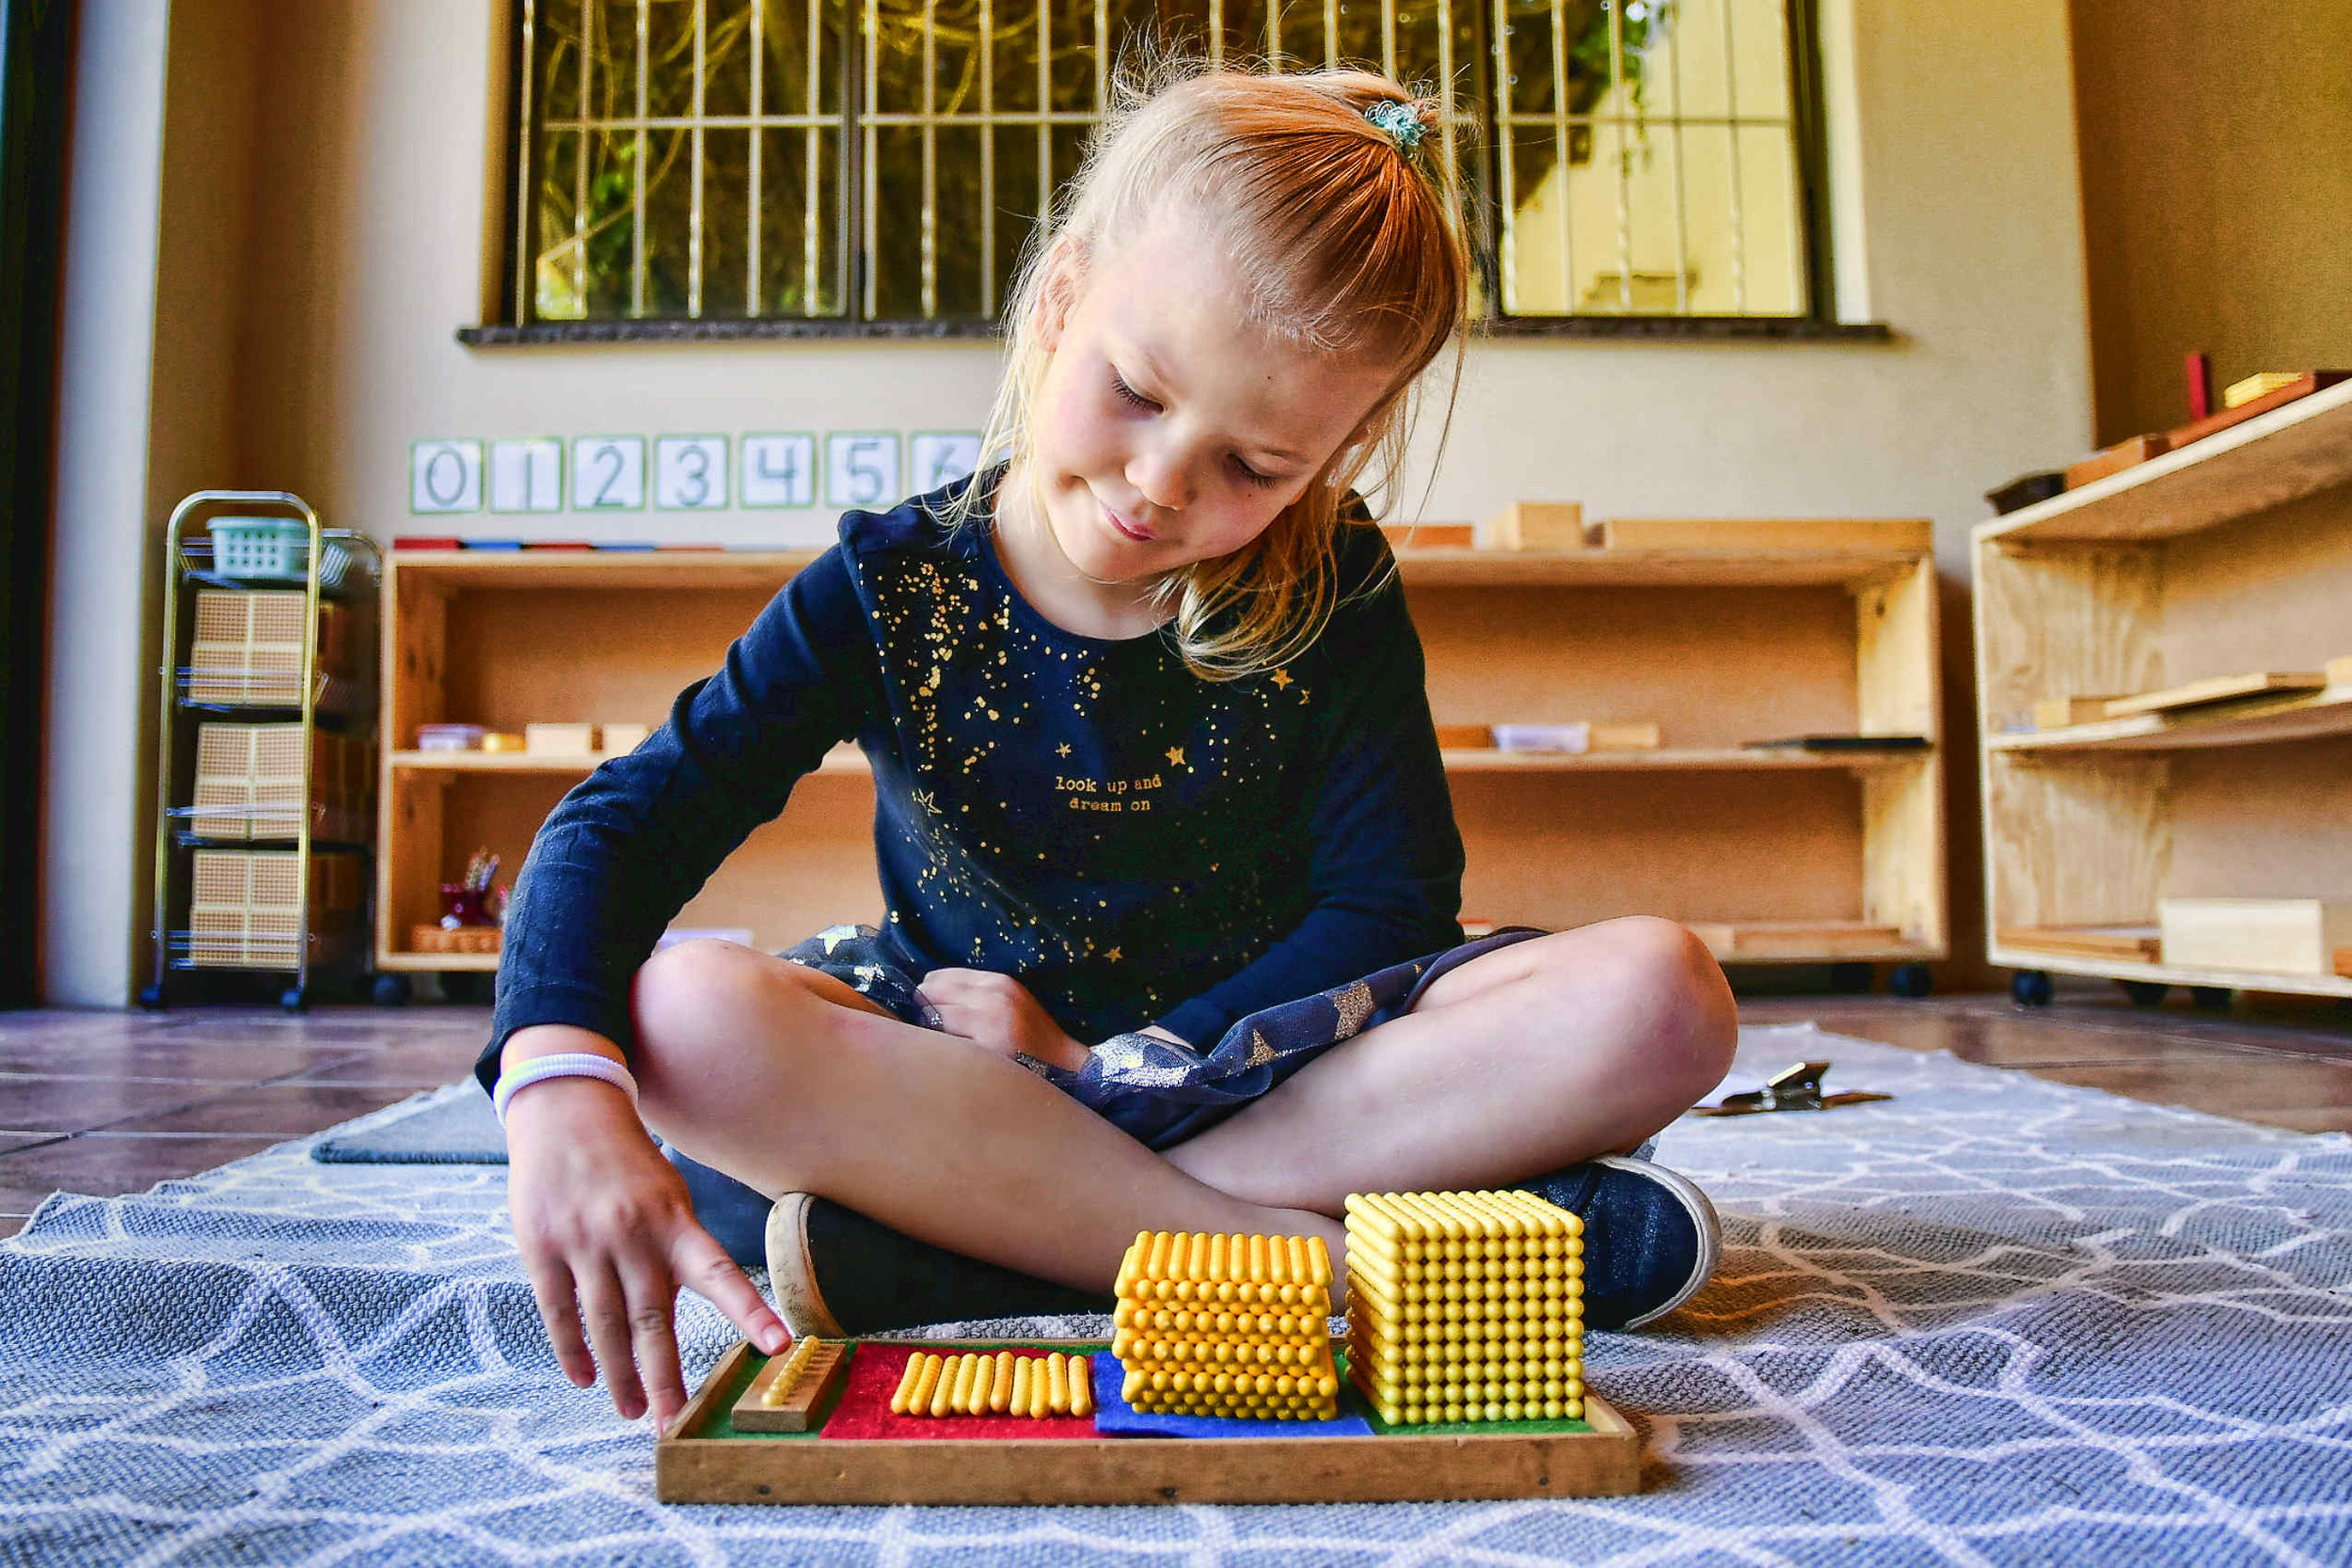 Basic things to look for in an authentic Montessori School? -